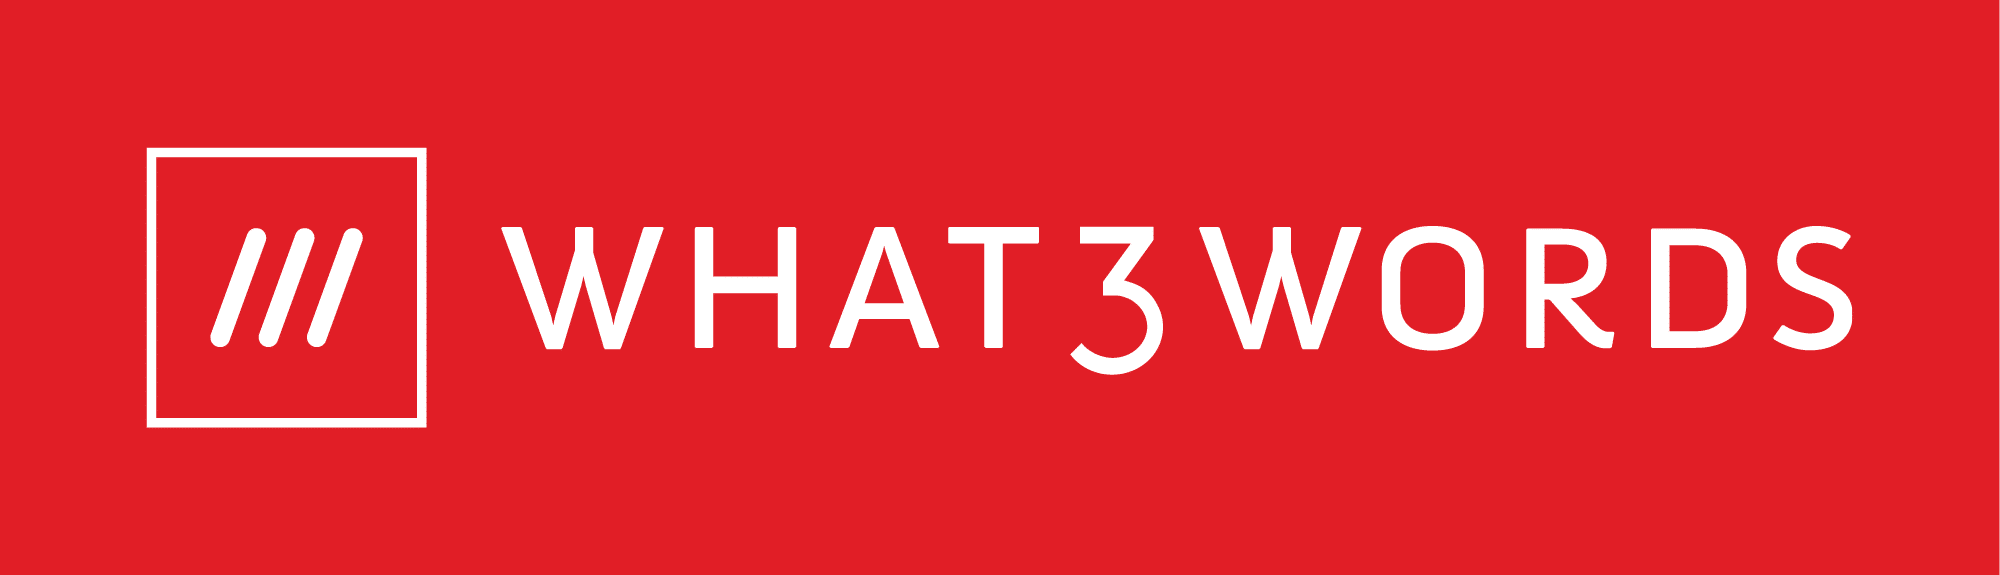 what3words-logo-horizontal-WHITE-styleguide-PNG-1